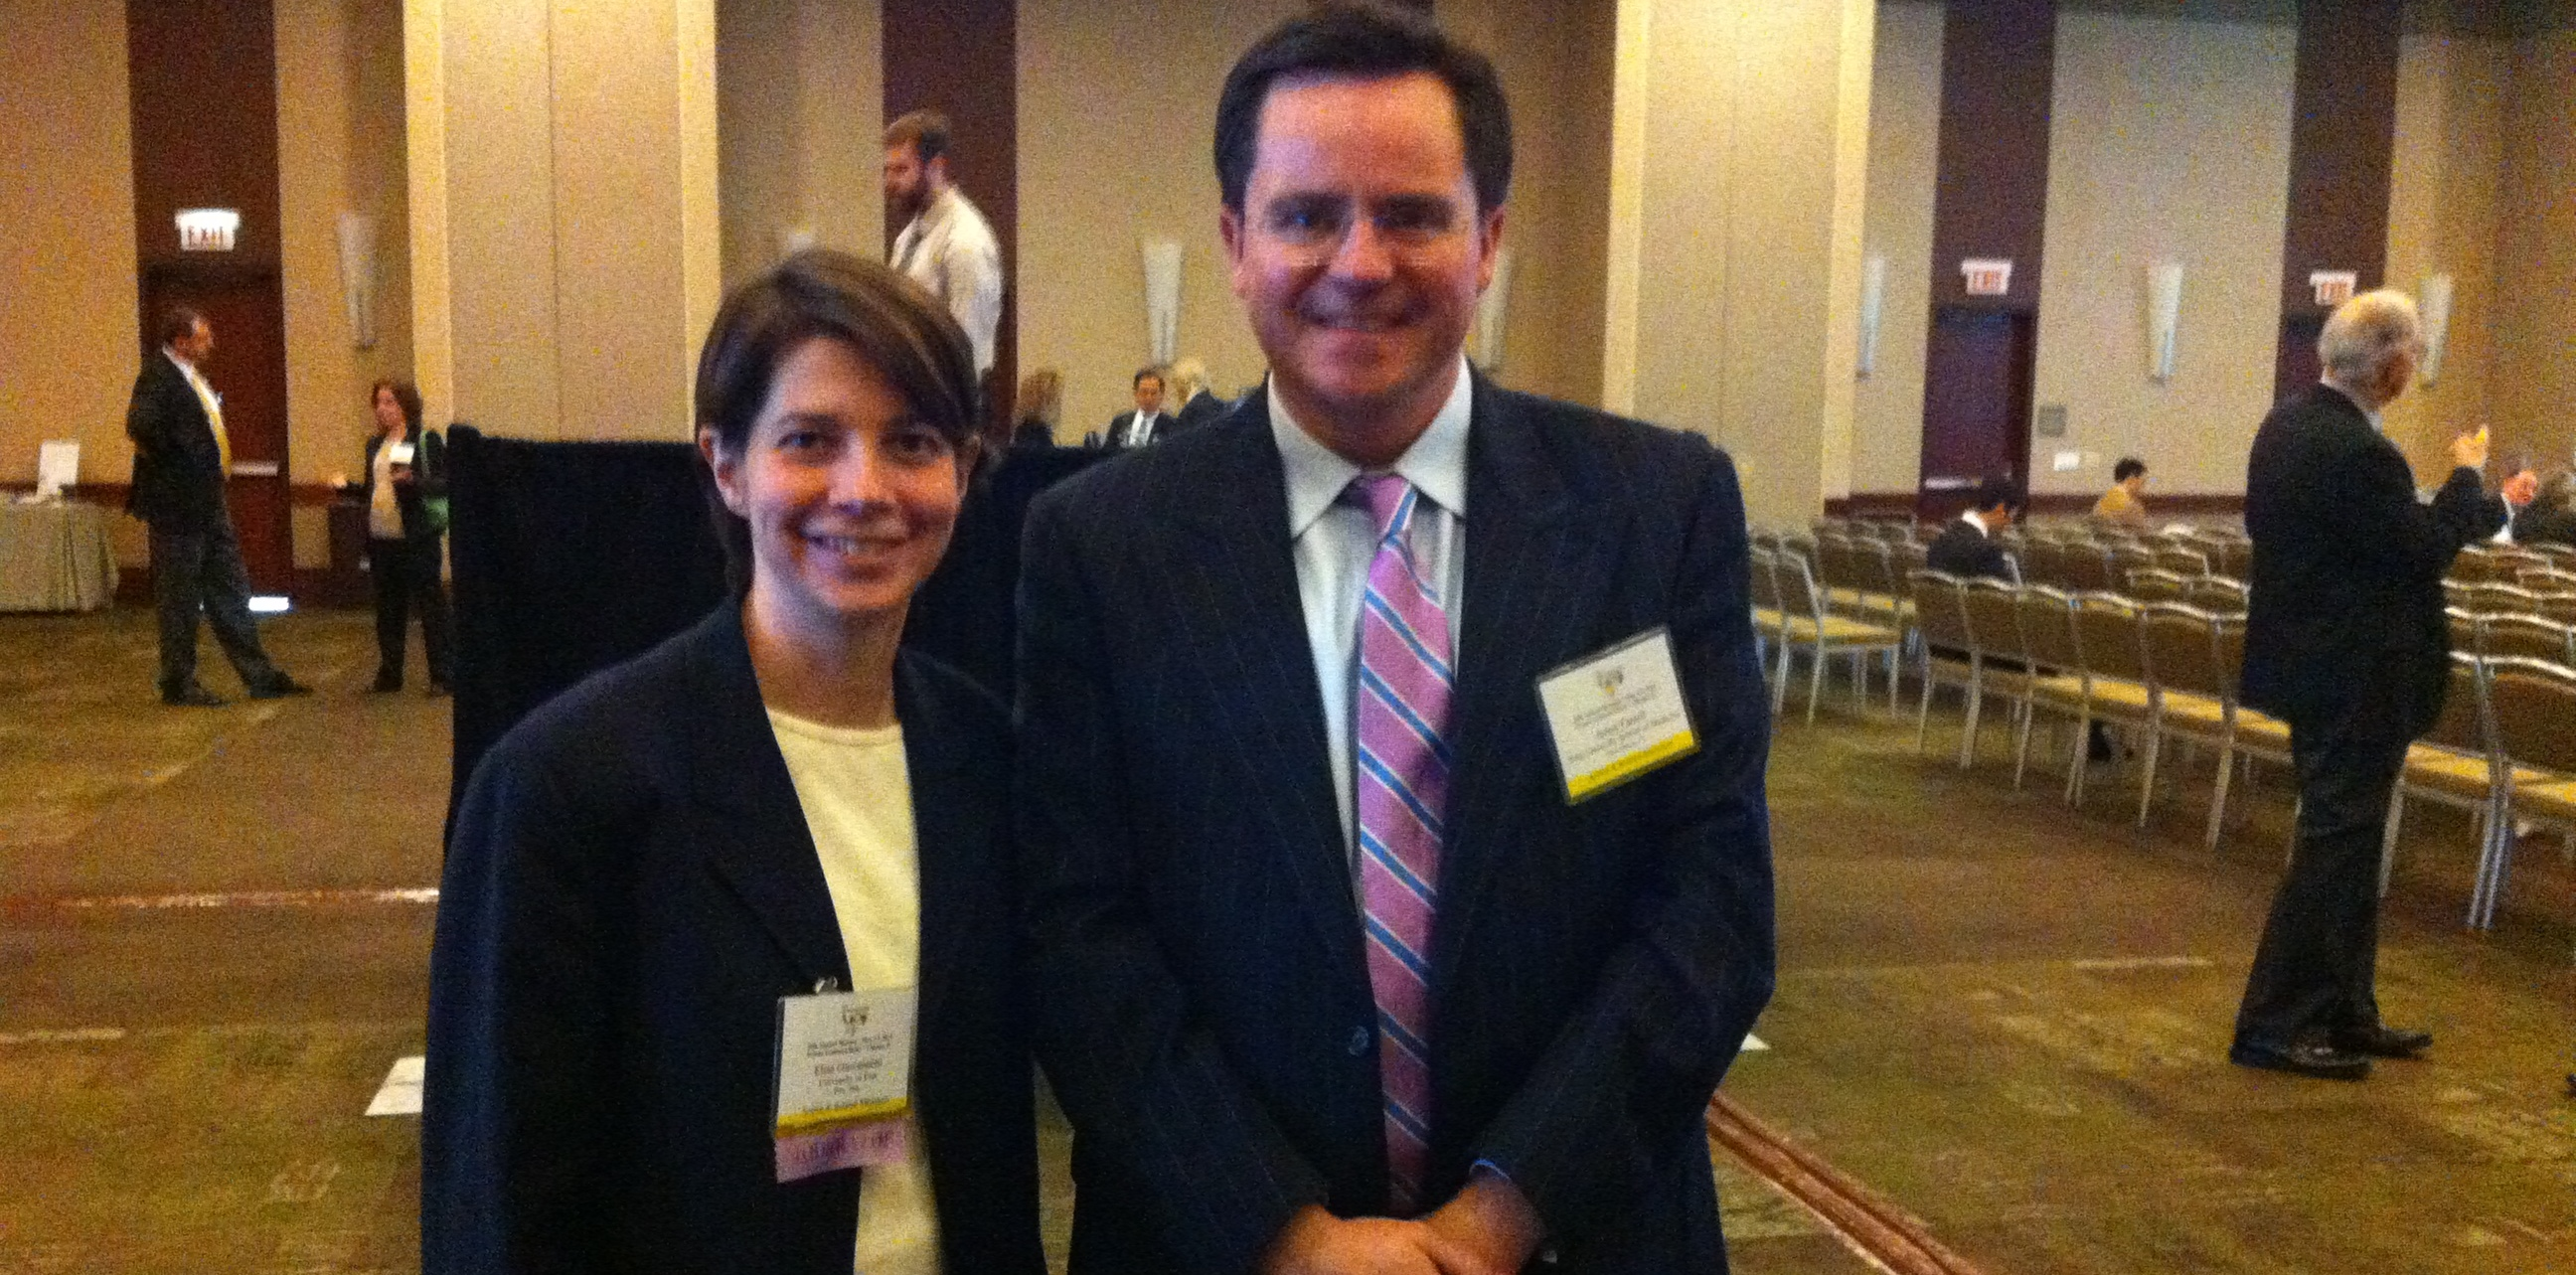 Dr. Giovannetti and Prof. Farrell at Pancreas Club Meeting 2014